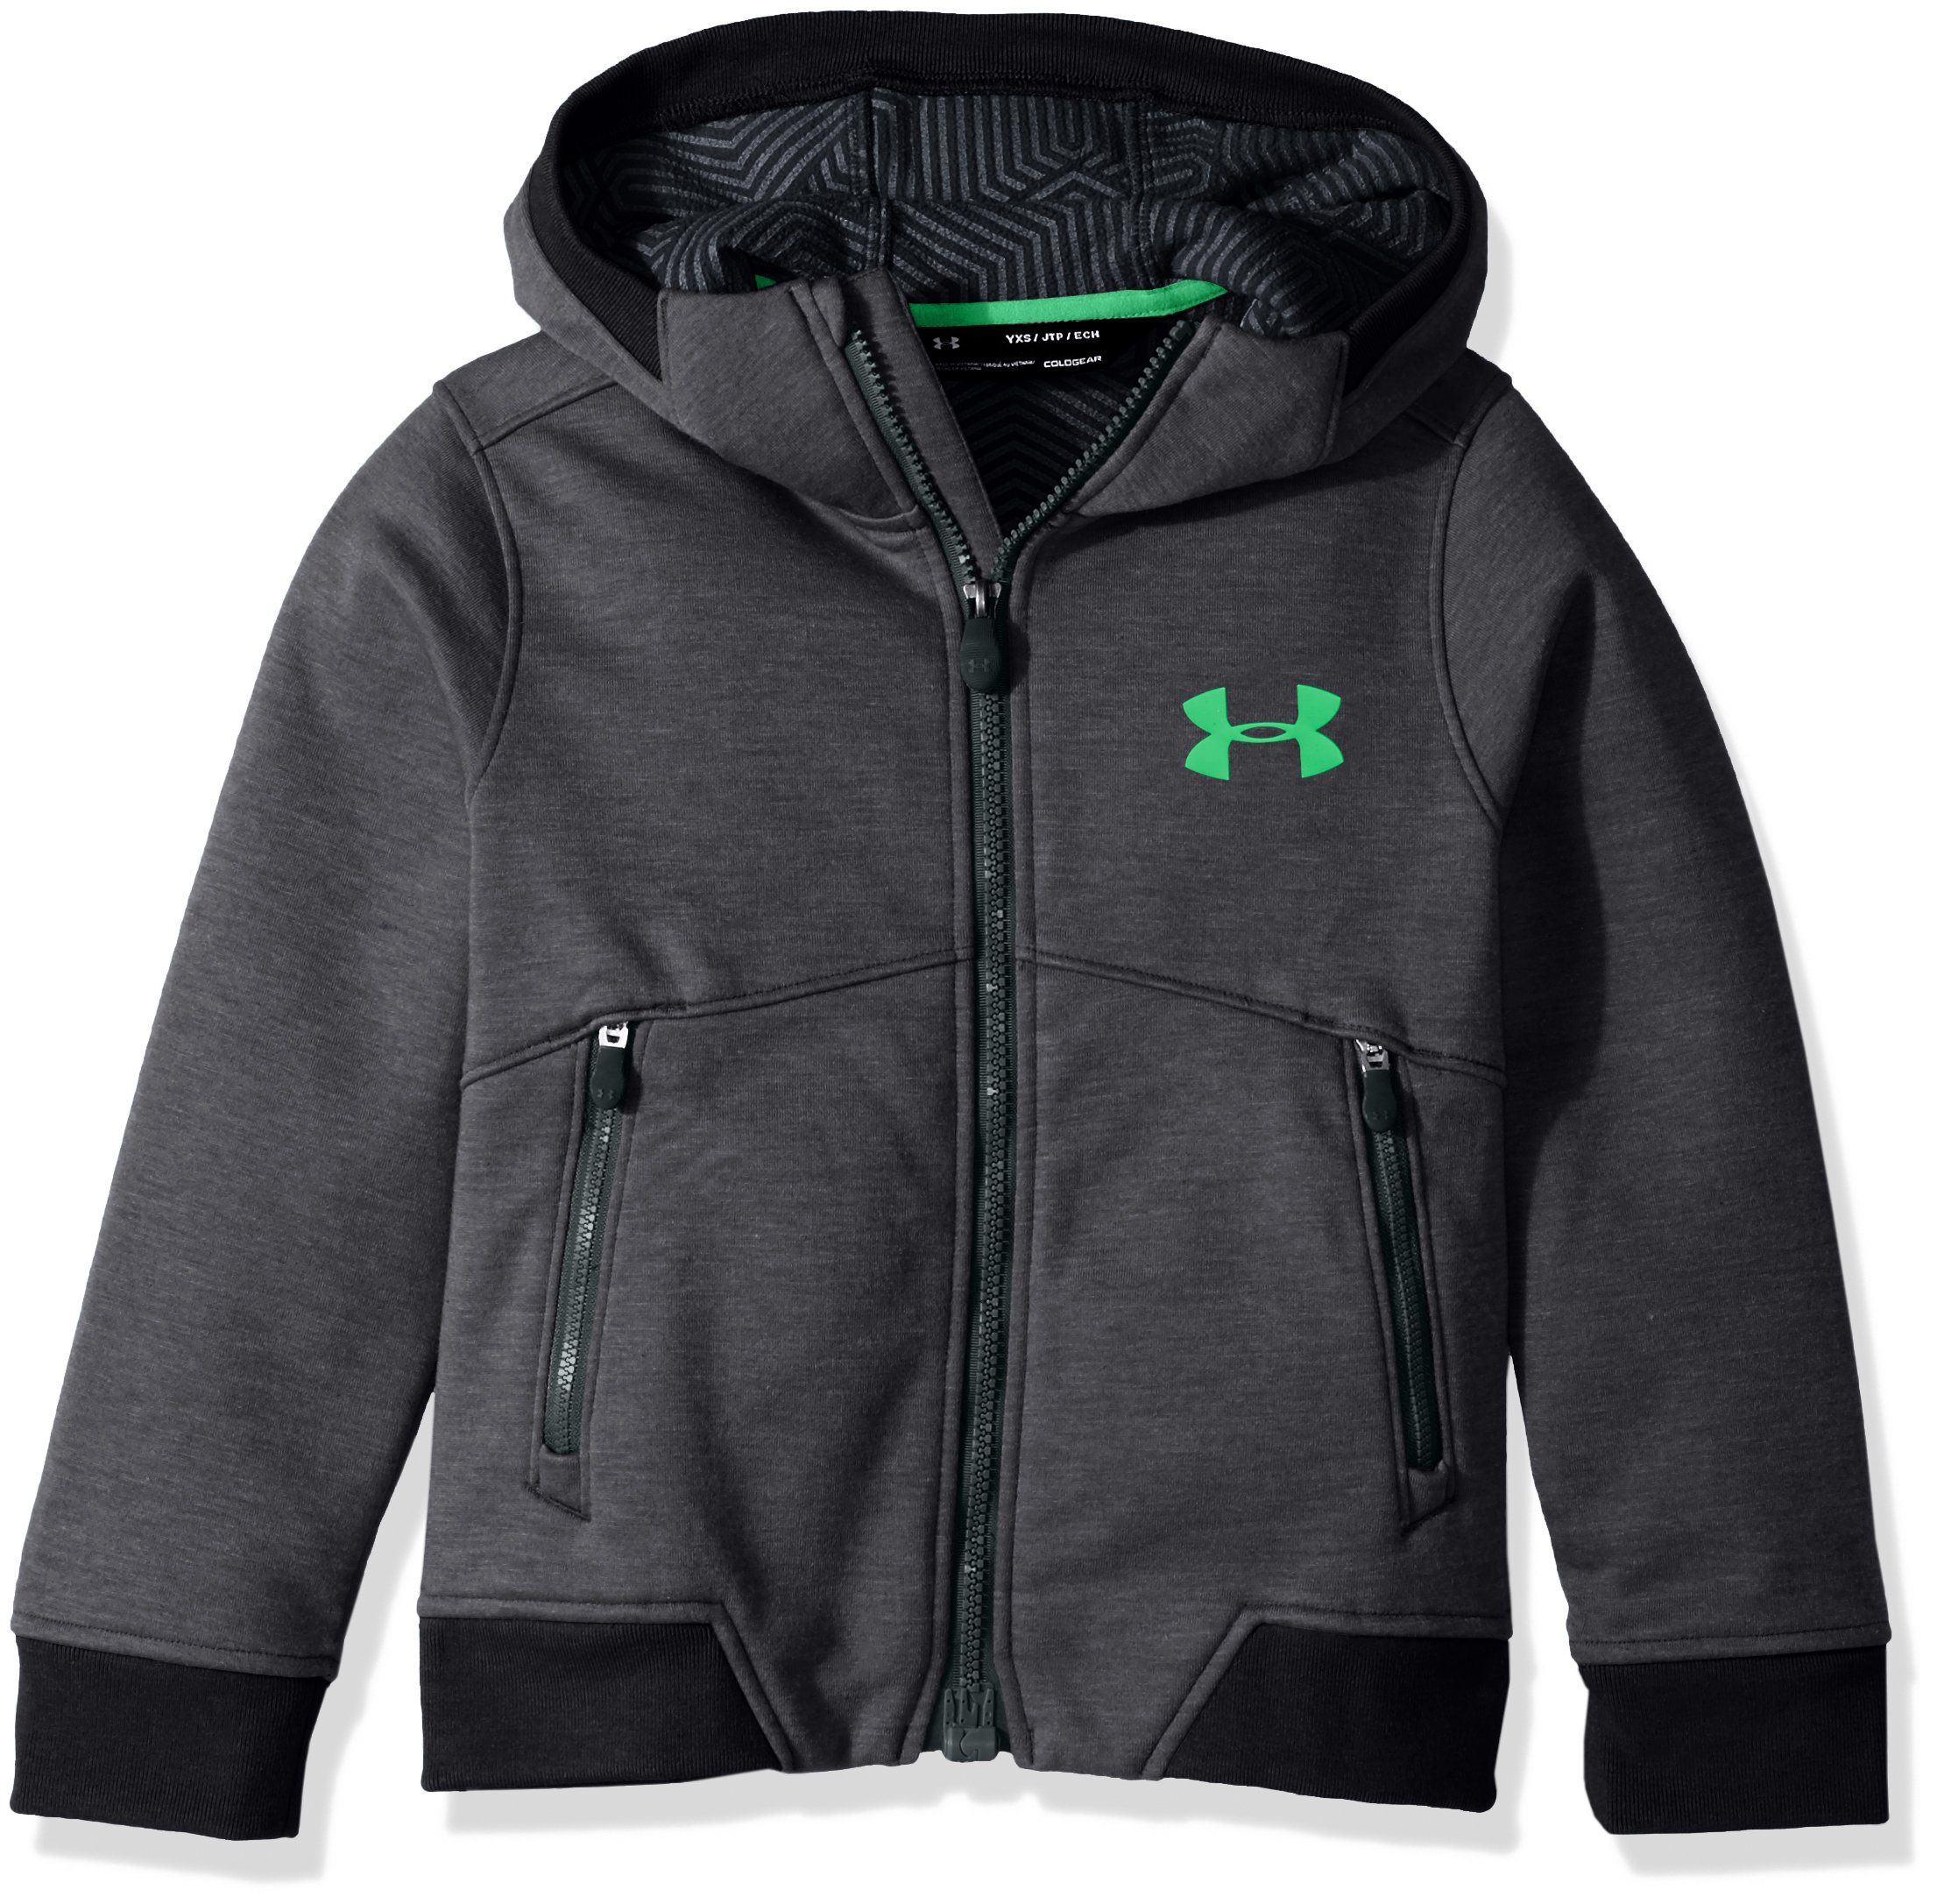 Under Armour Boys' Storm Dobson Softshell, Asphalt Heather/Anthracite, Youth Small